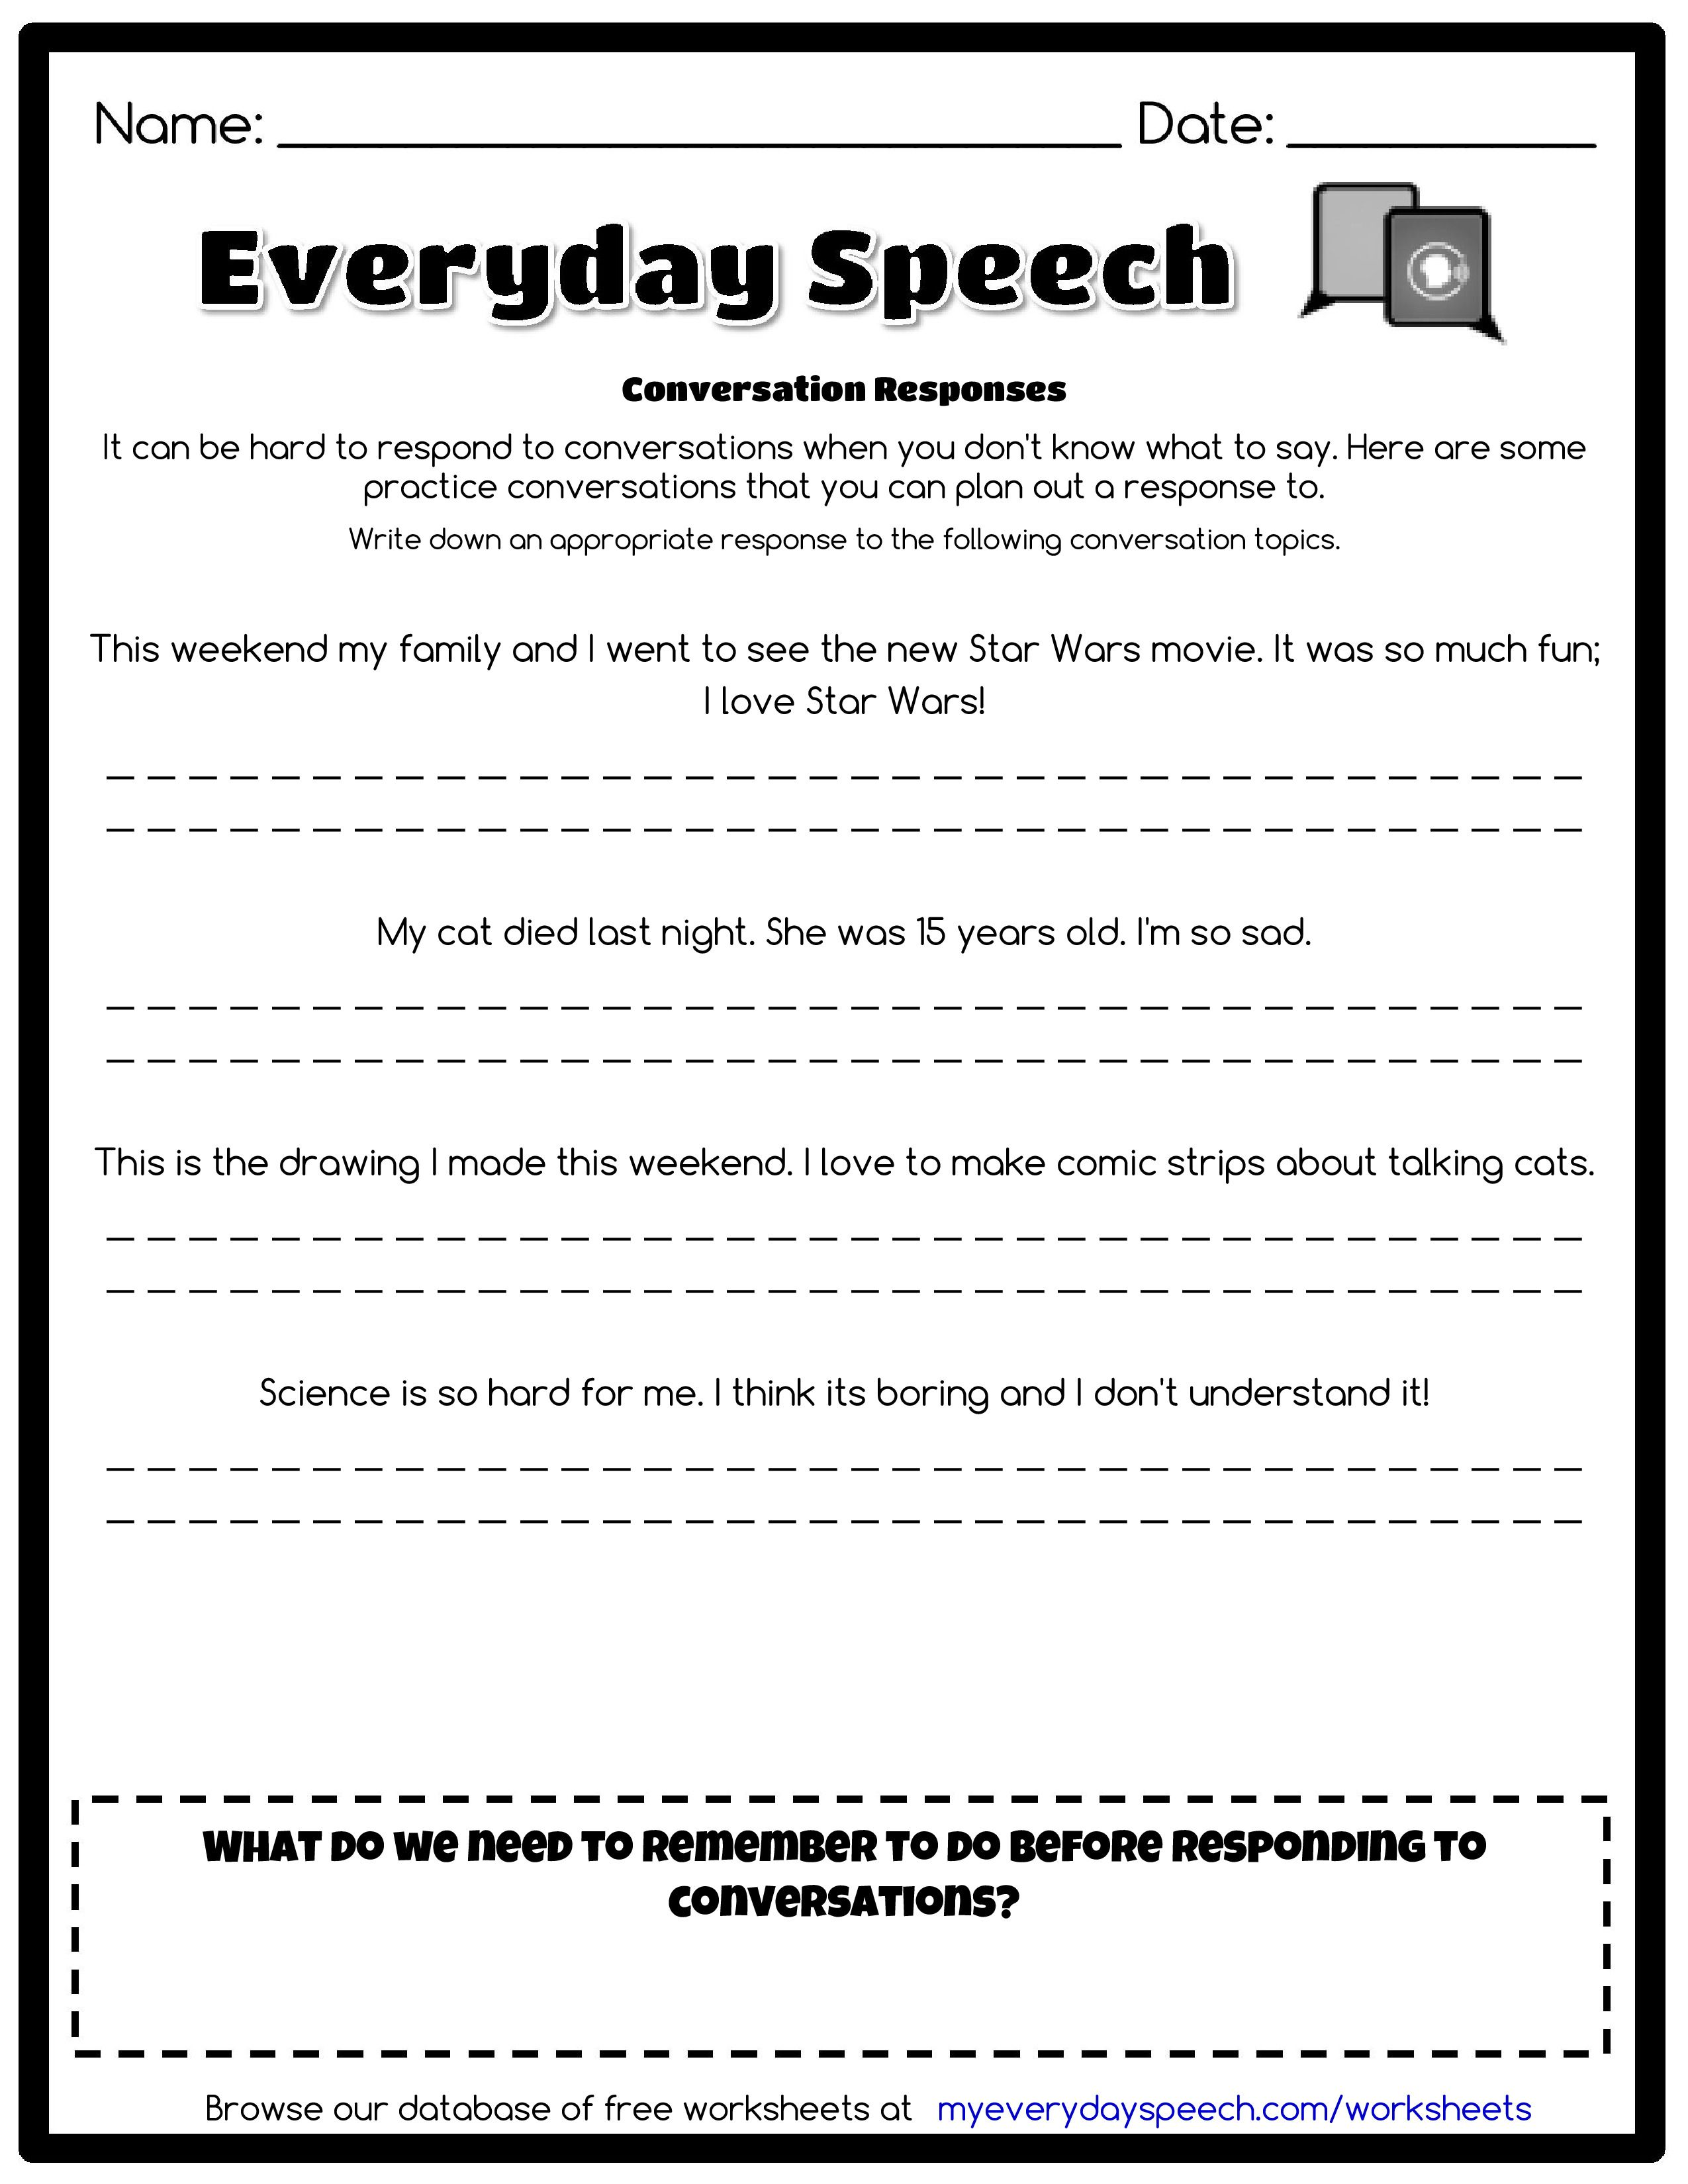 Worksheet Creator With Images Coping Skills Worksheets Speech